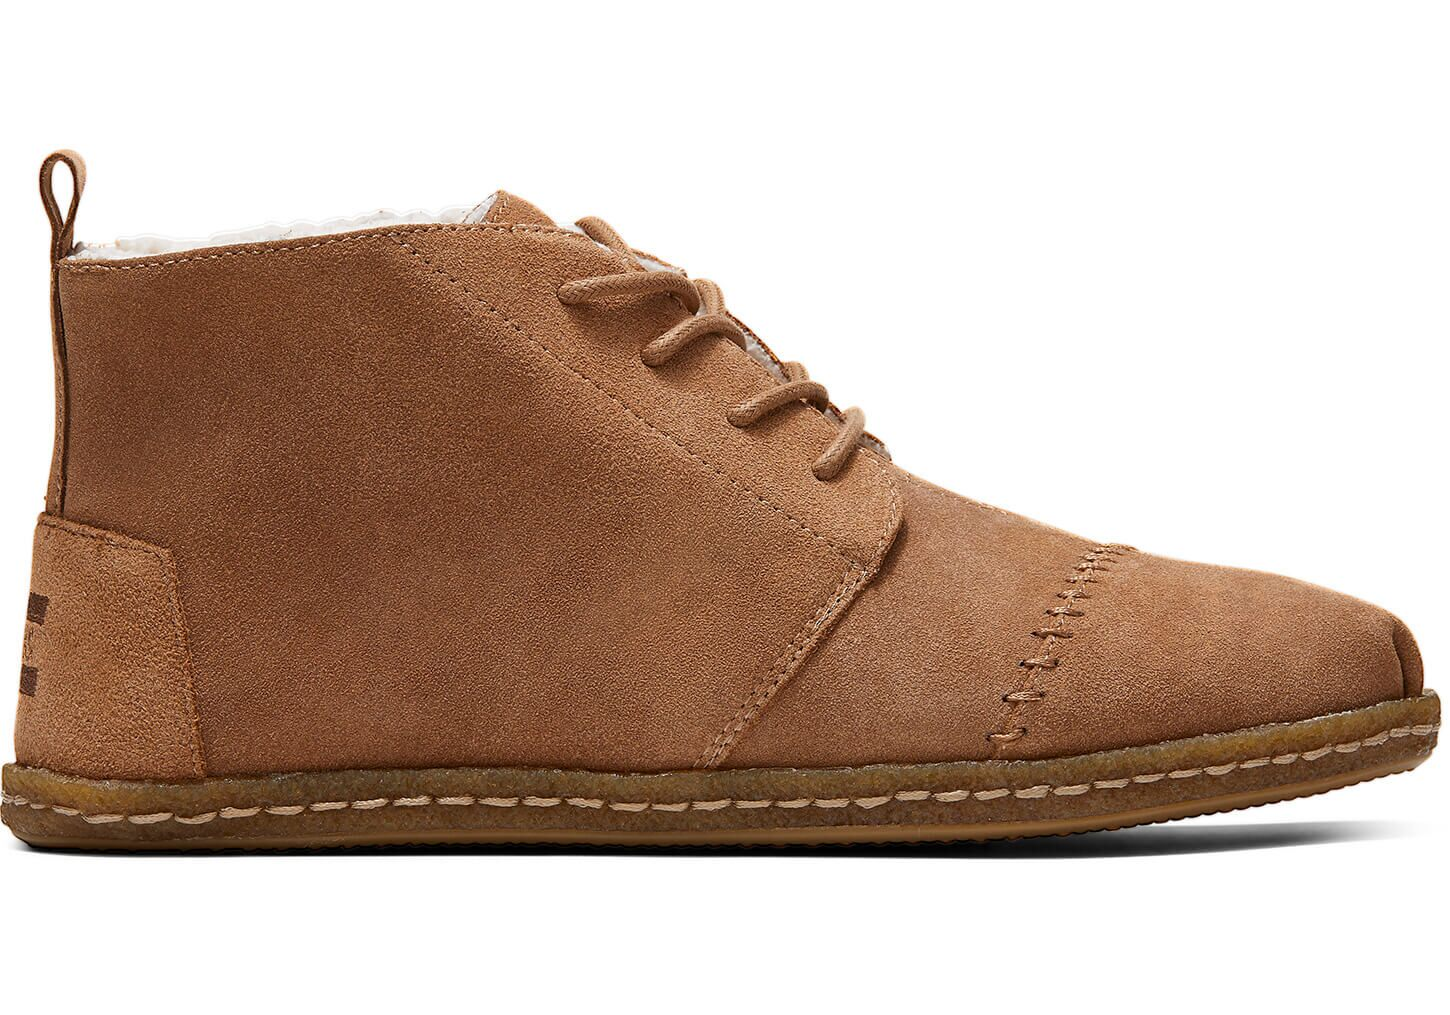 Men's Toffee Suede Faux Shearling Boots